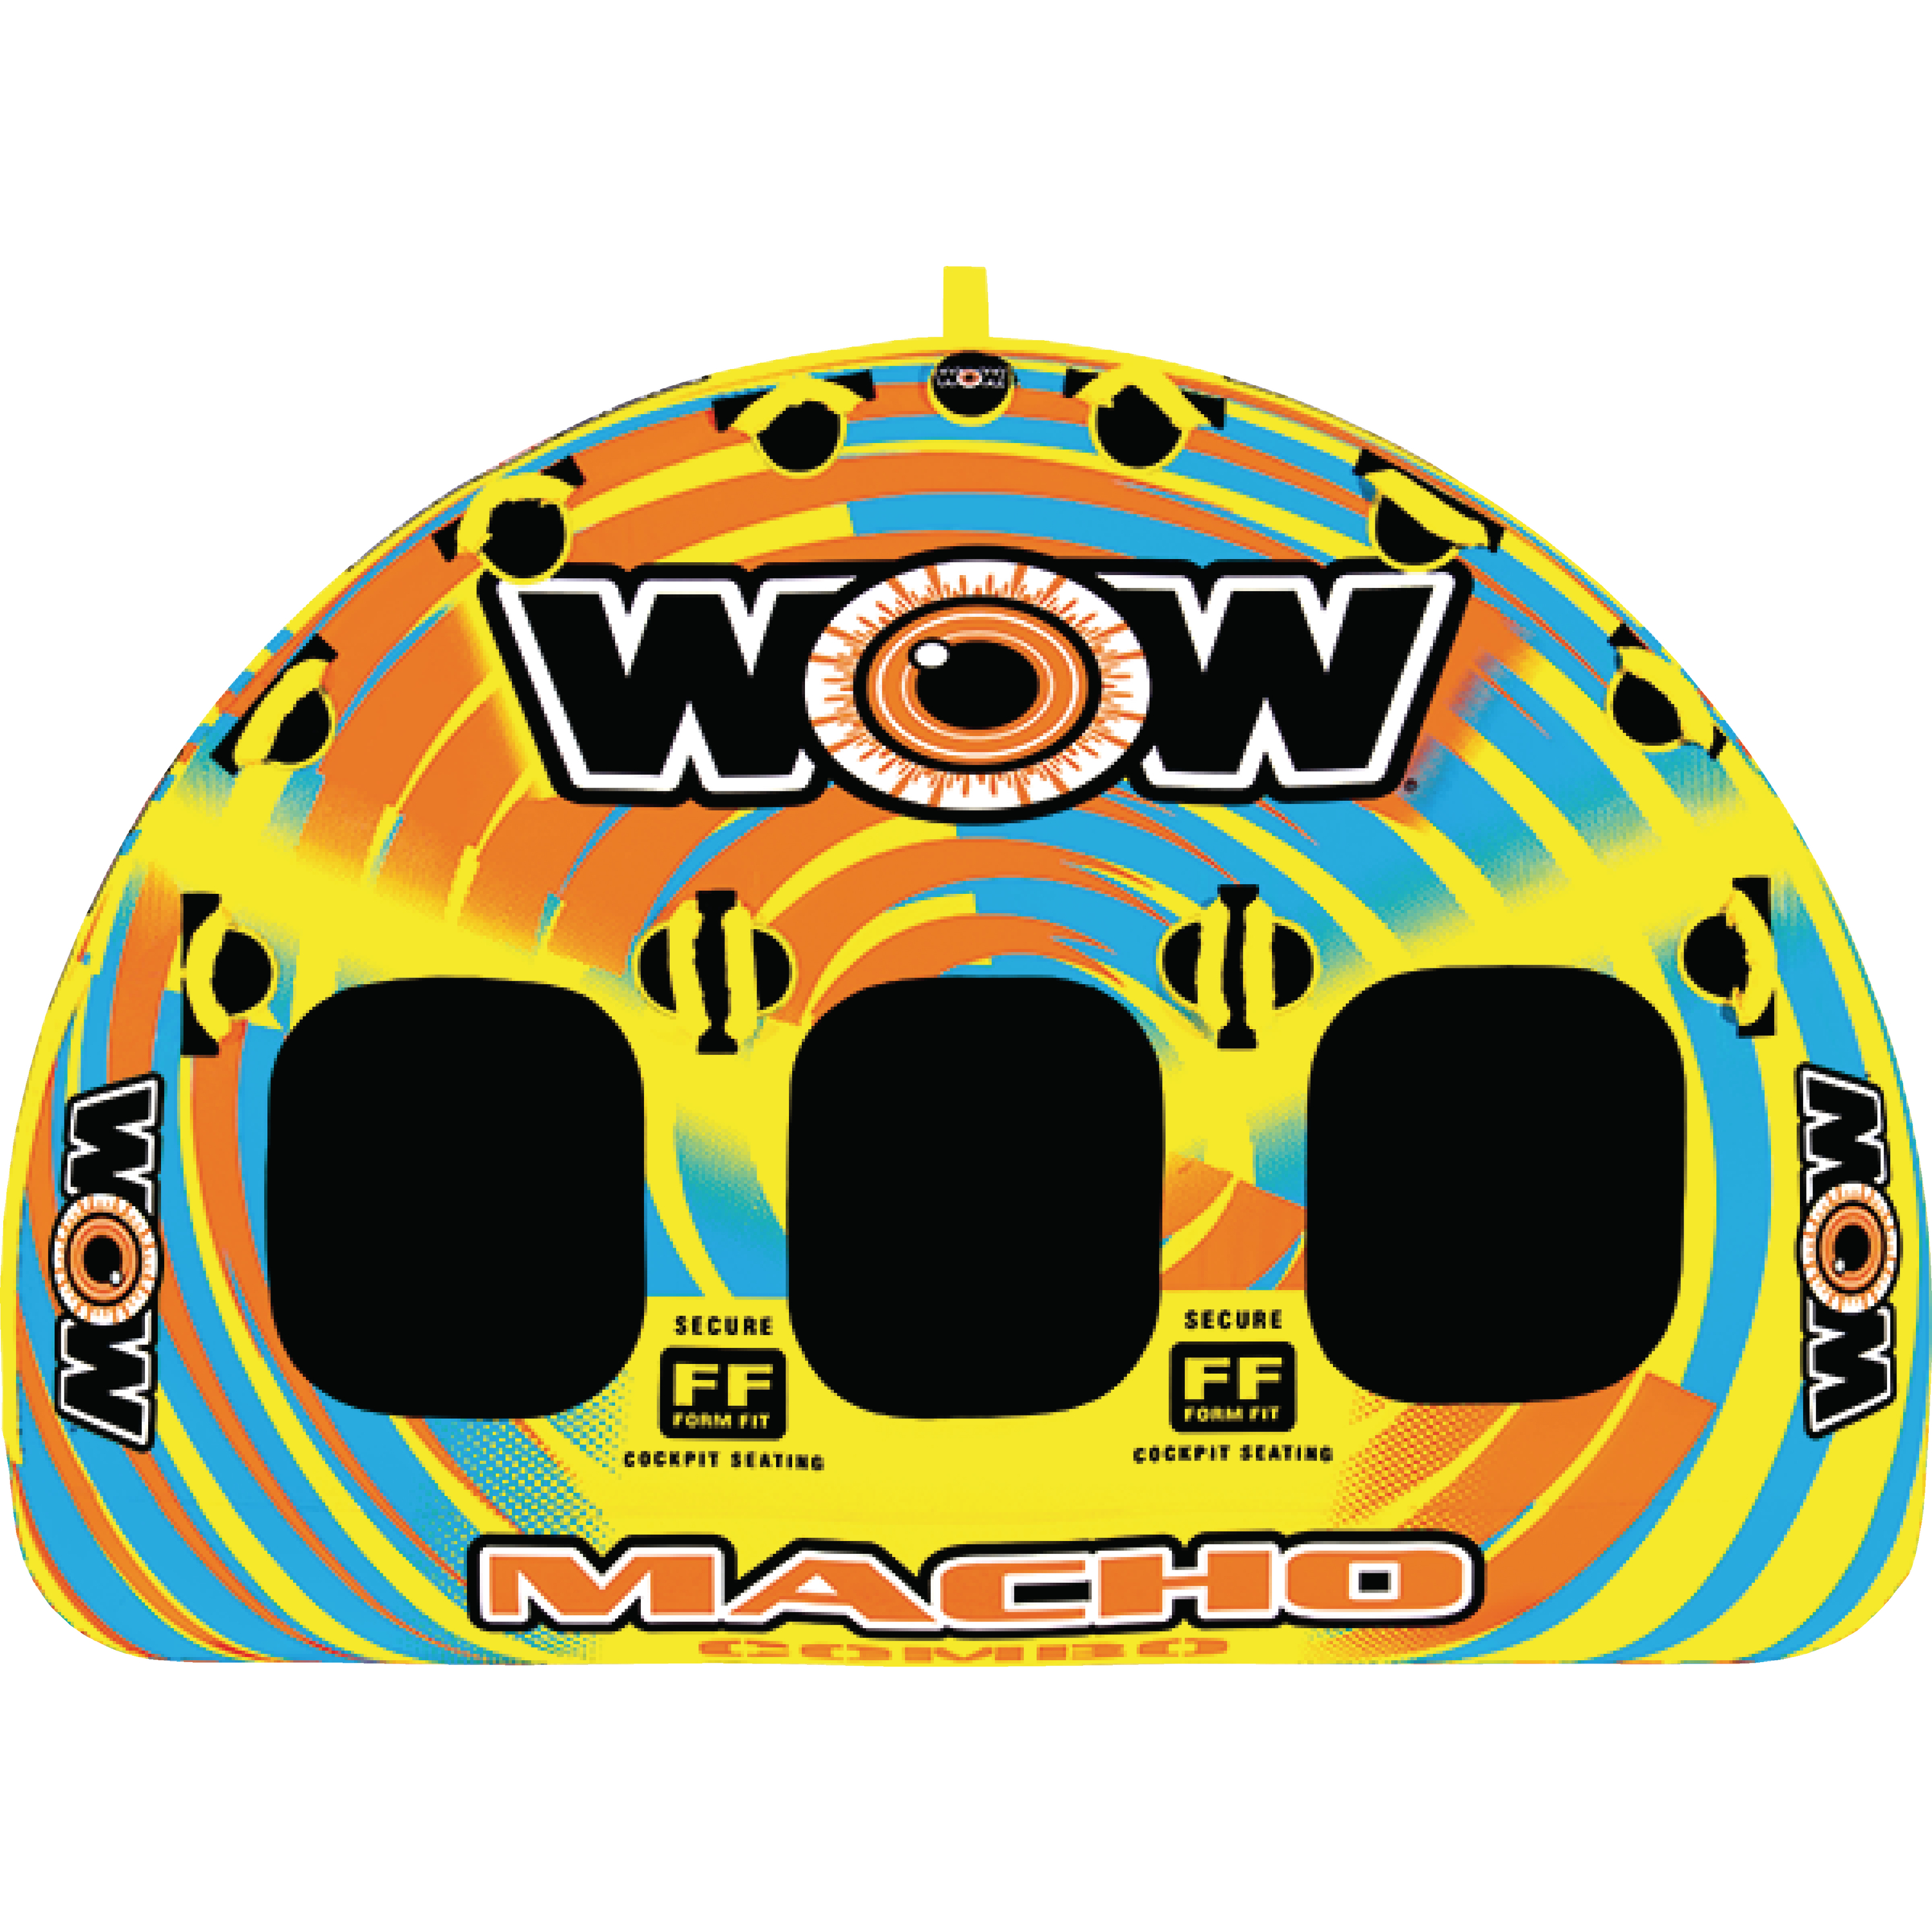 WOW 16-1030 Macho 1-3 Rider Inflatable Towable